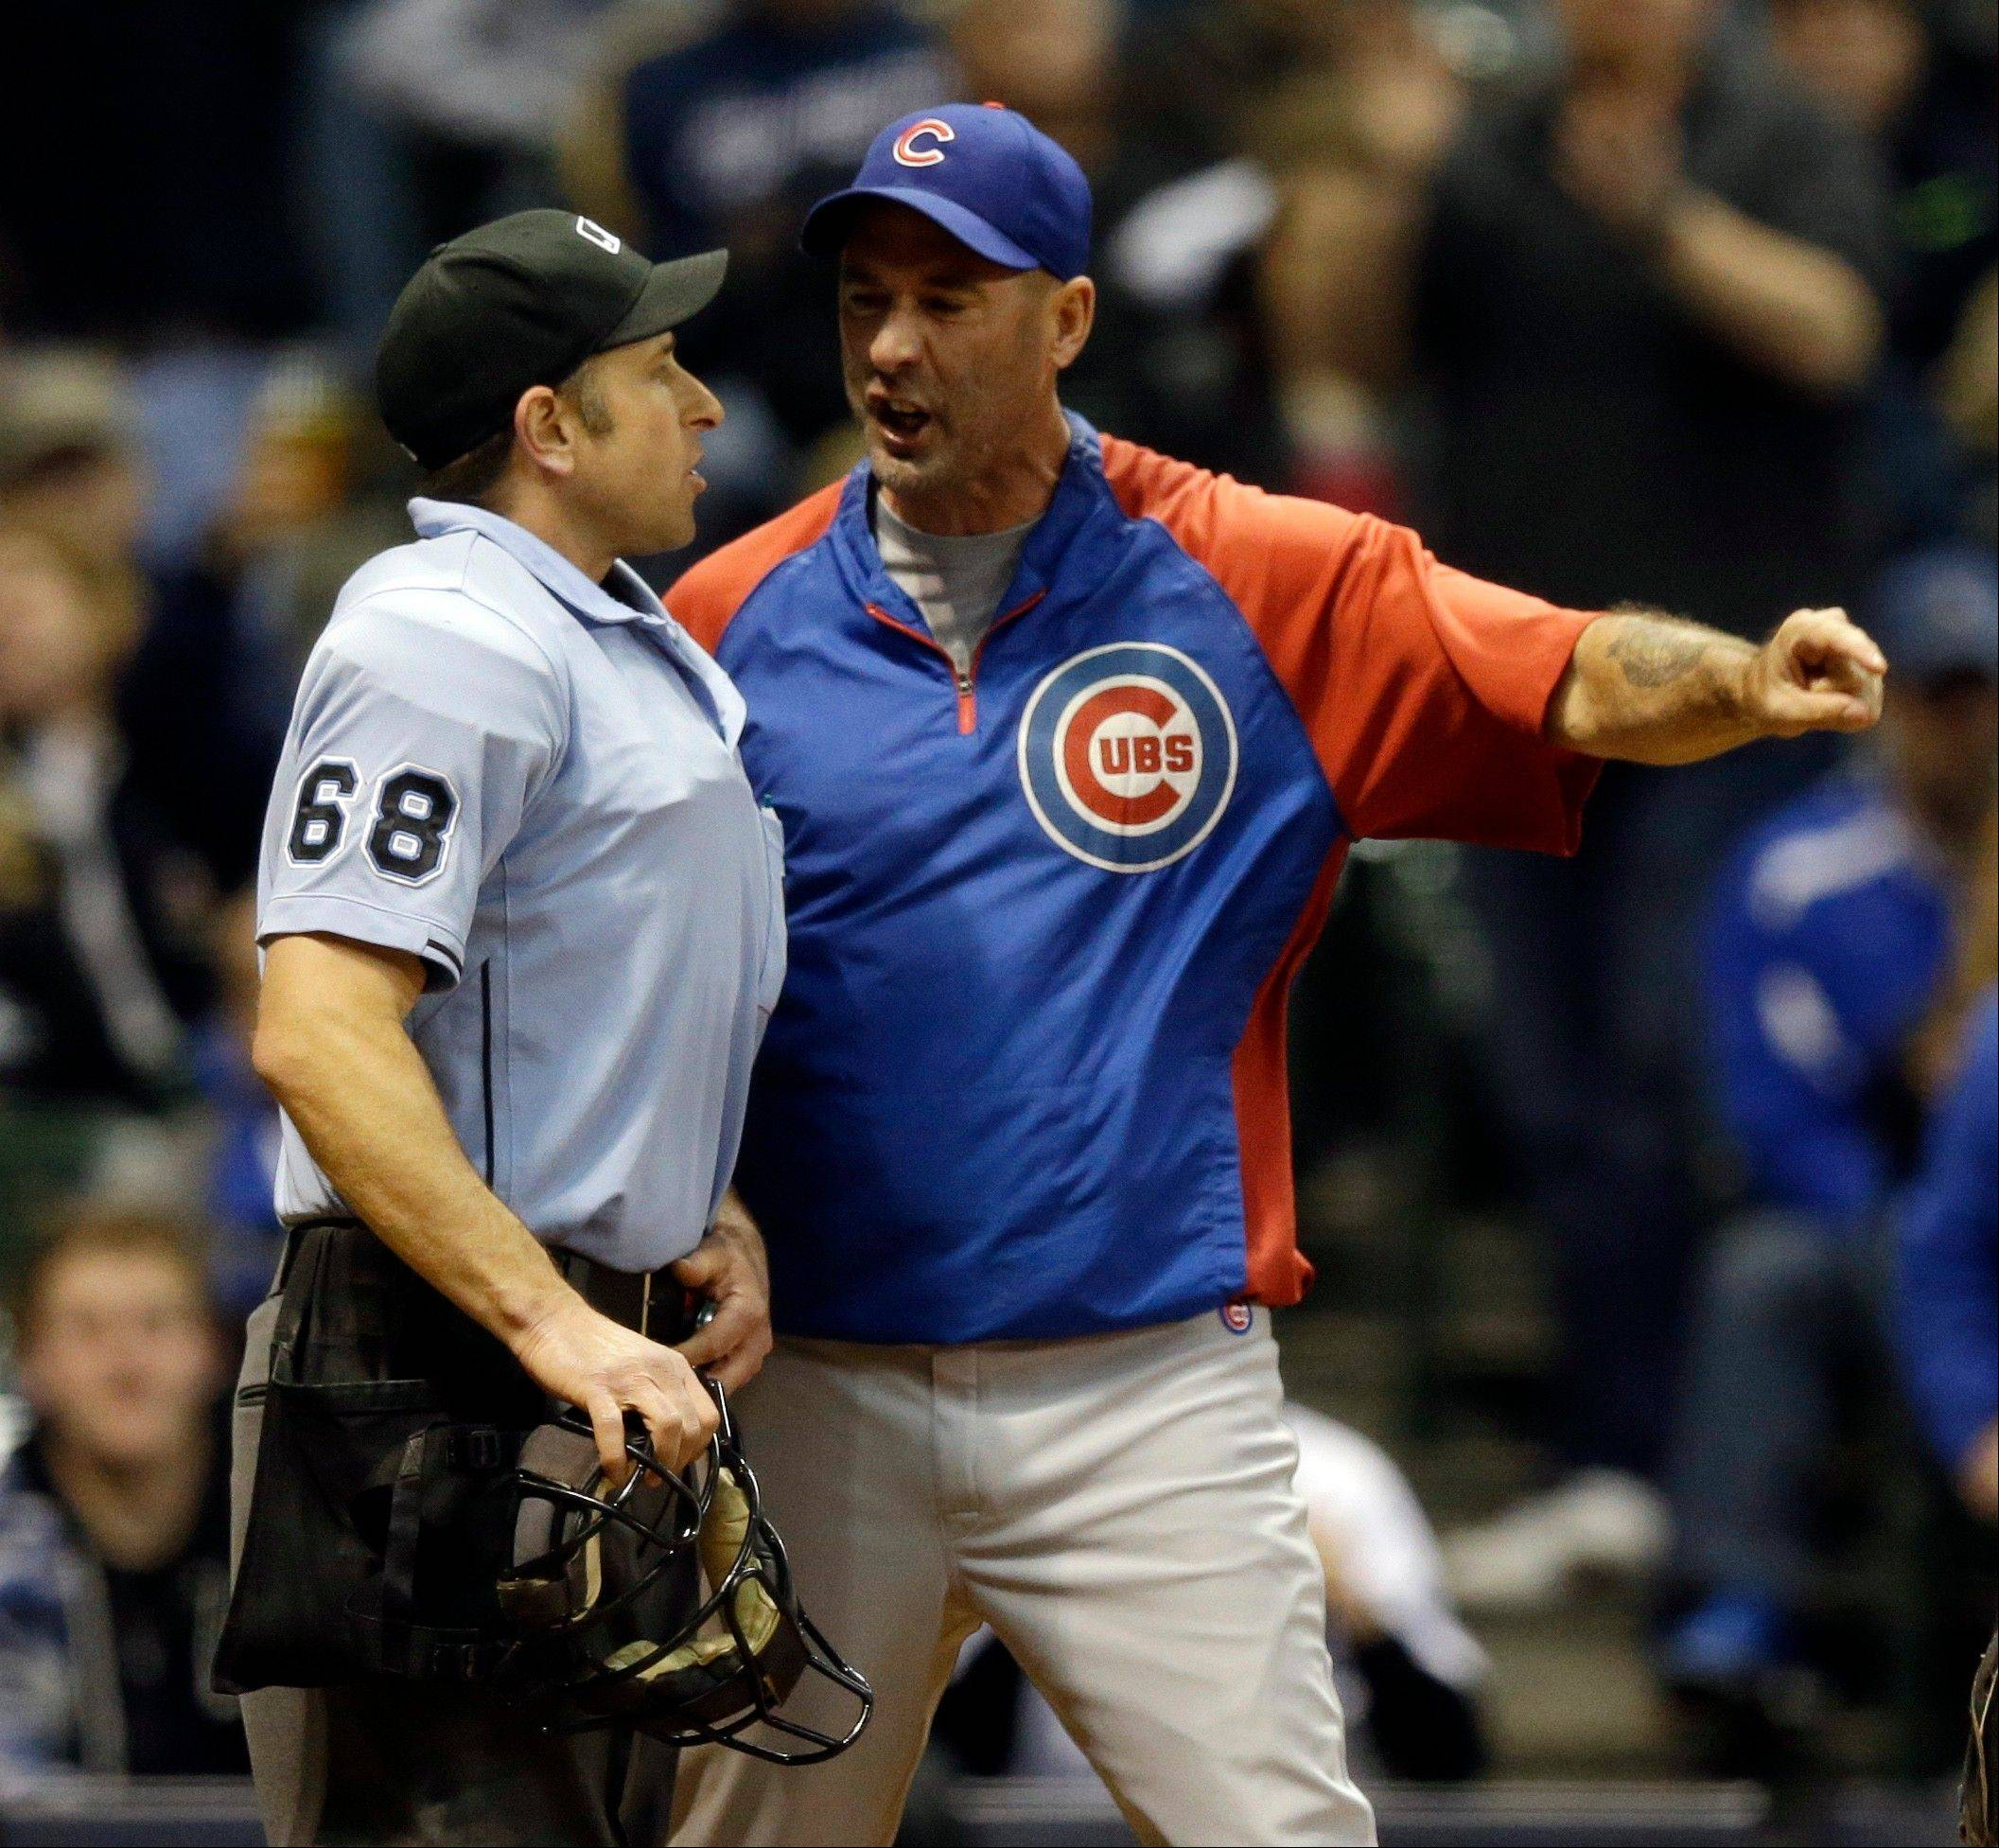 Chicago Cubs manager Dale Sveum, right, argues with home plate umpire Chris Guccione during the sixth inning of a baseball game against the Milwaukee Brewers, Friday, April 19, 2013, in Milwaukee. Sveum was ejected from the game.